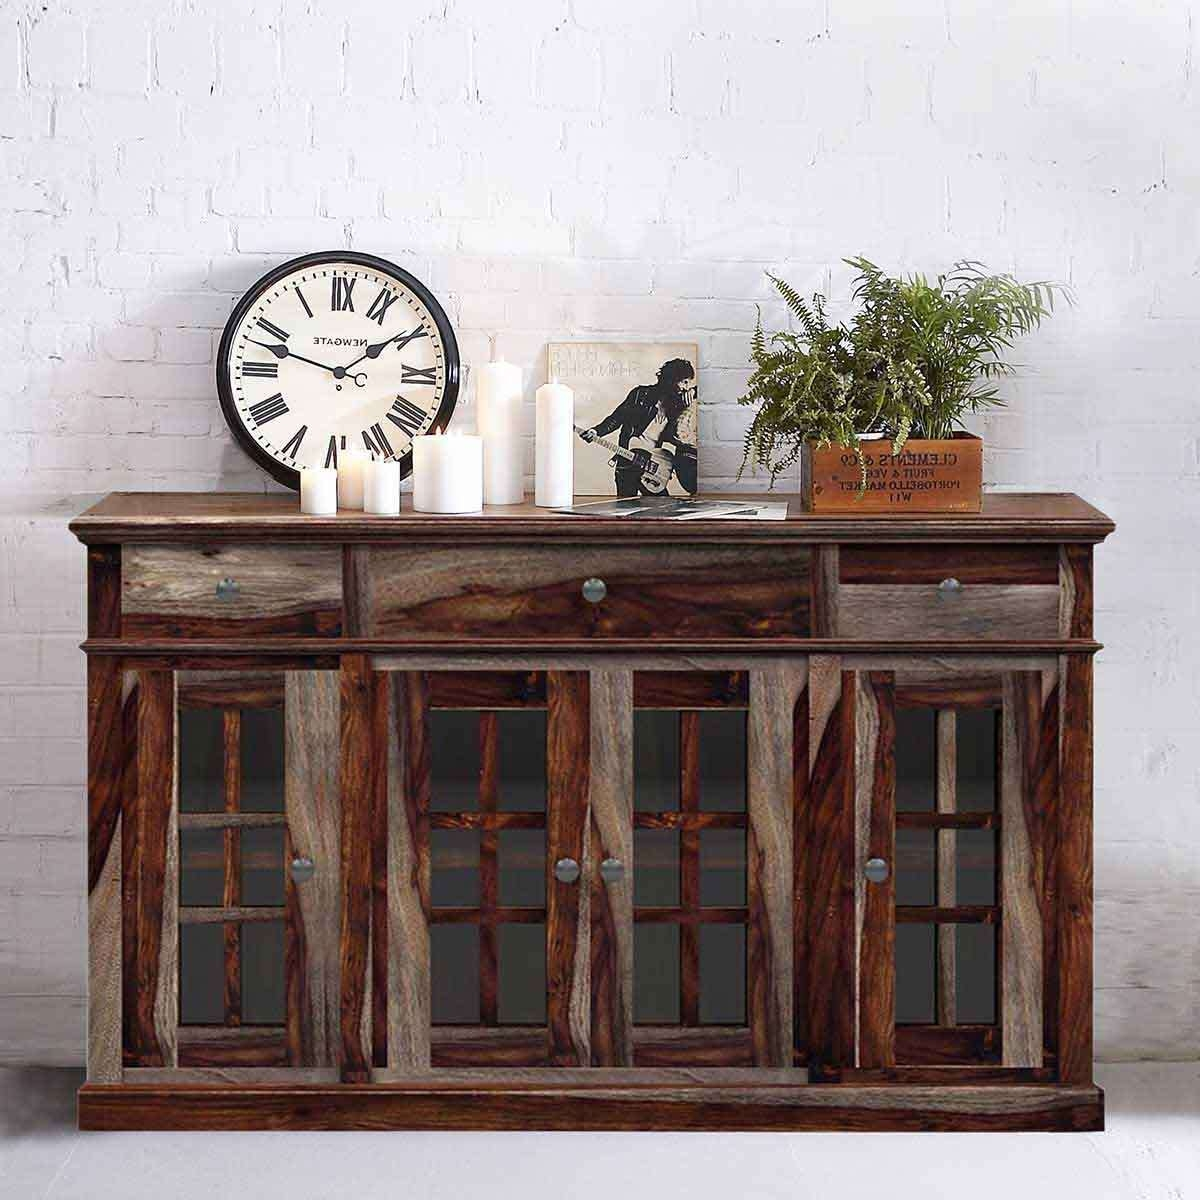 Rustic Buffets Sideboards Intended For Rustic Buffet Sideboards (View 7 of 20)